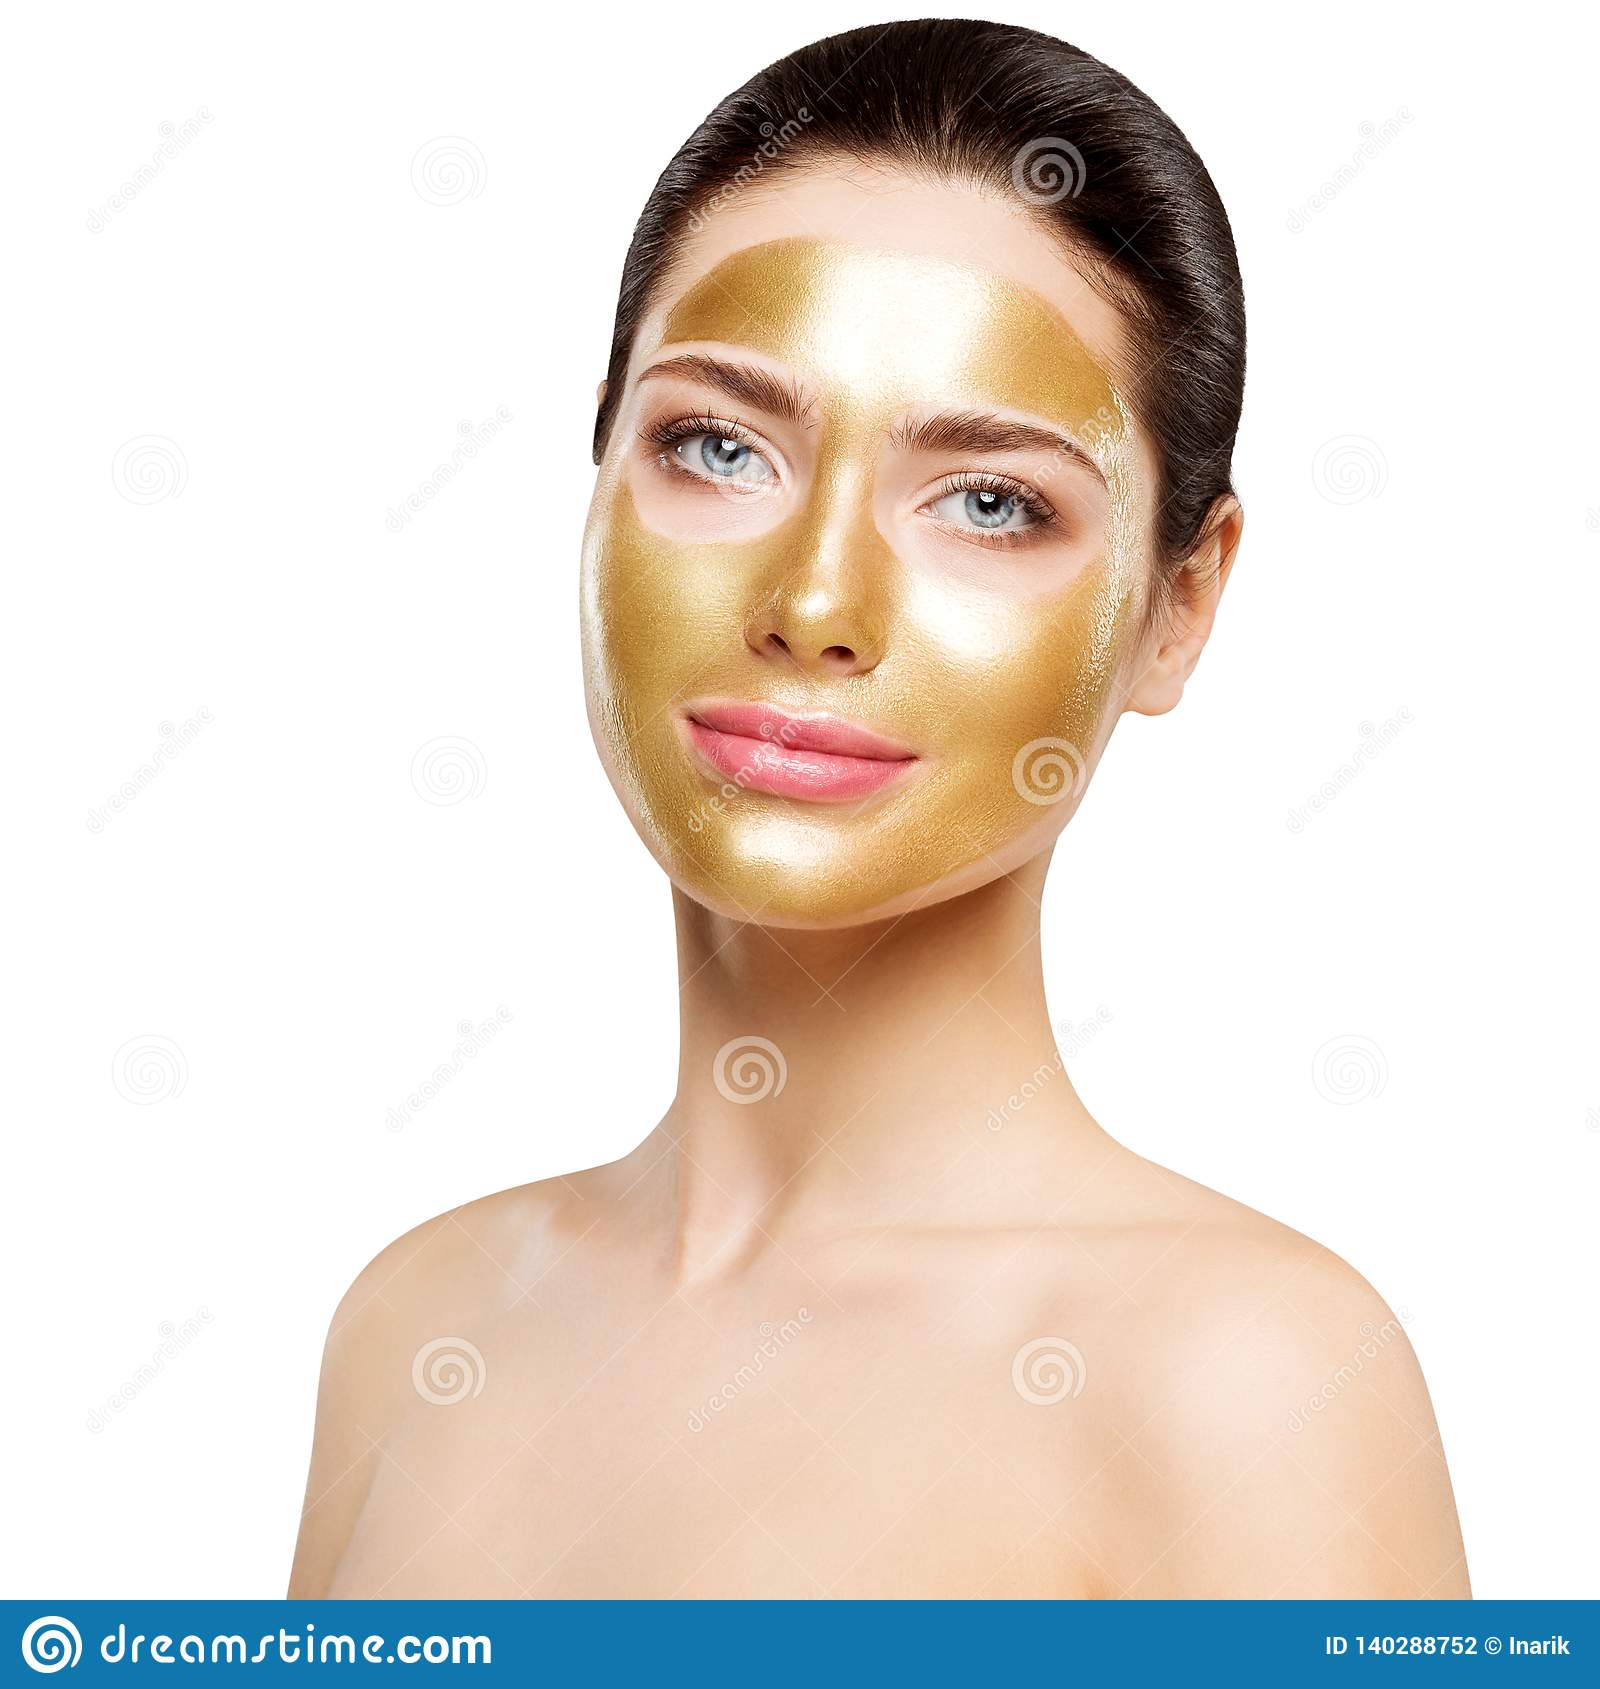 Woman Gold Mask, Beautiful Model with Golden Facial Skin Cosmetic, Beauty Skincare and Treatment